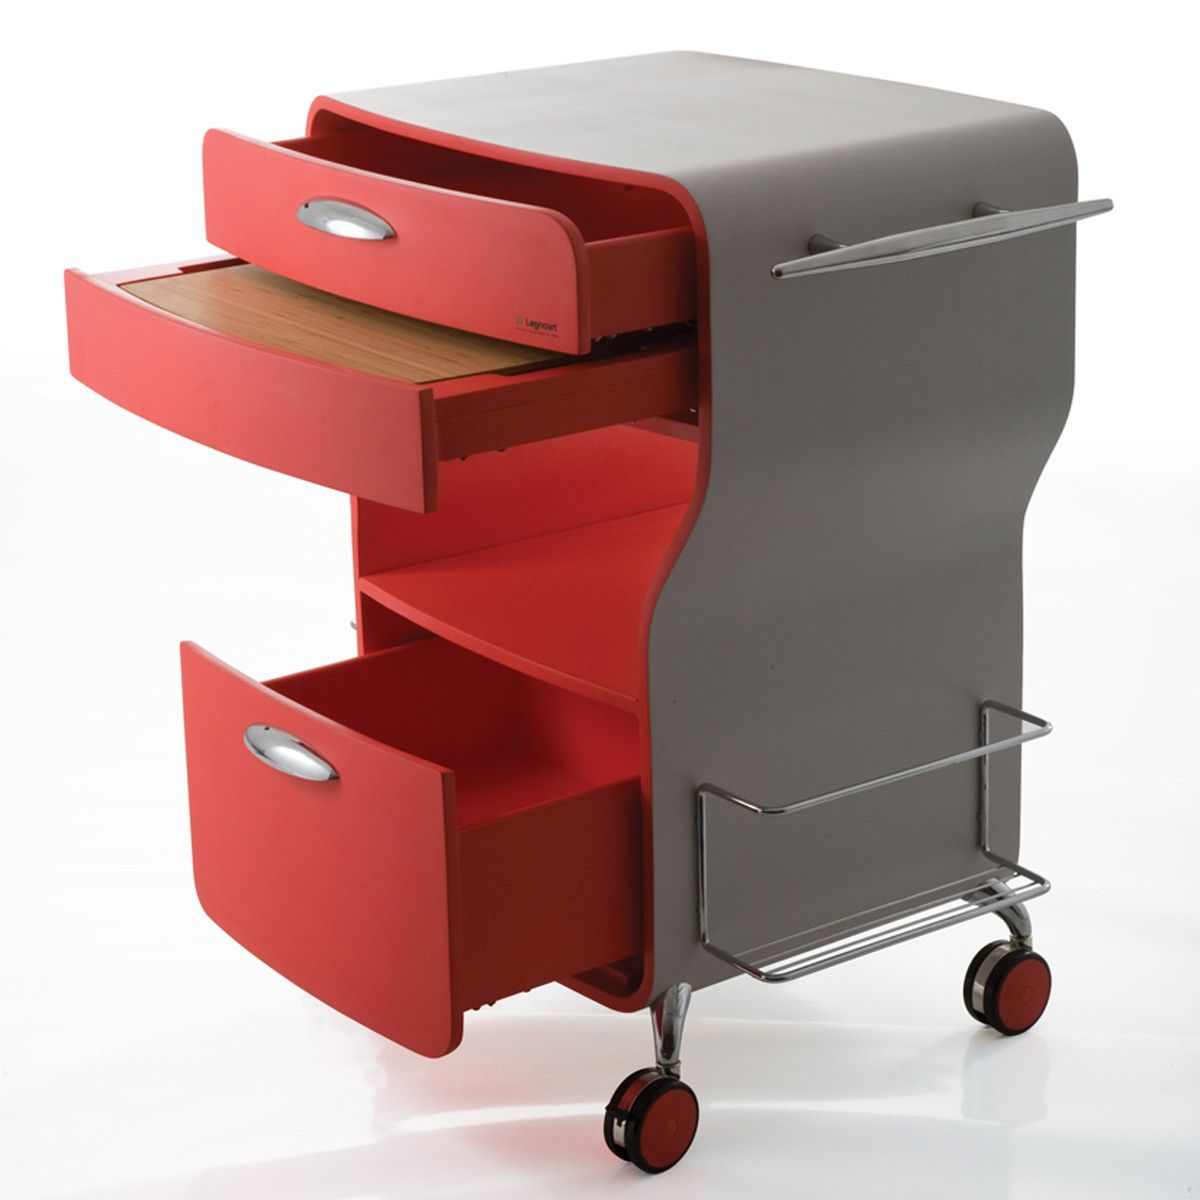 Luca Trazzi Legnoart Trix Kitchen Cart Red 1 075fab 2 387 81 Retail Price Fab